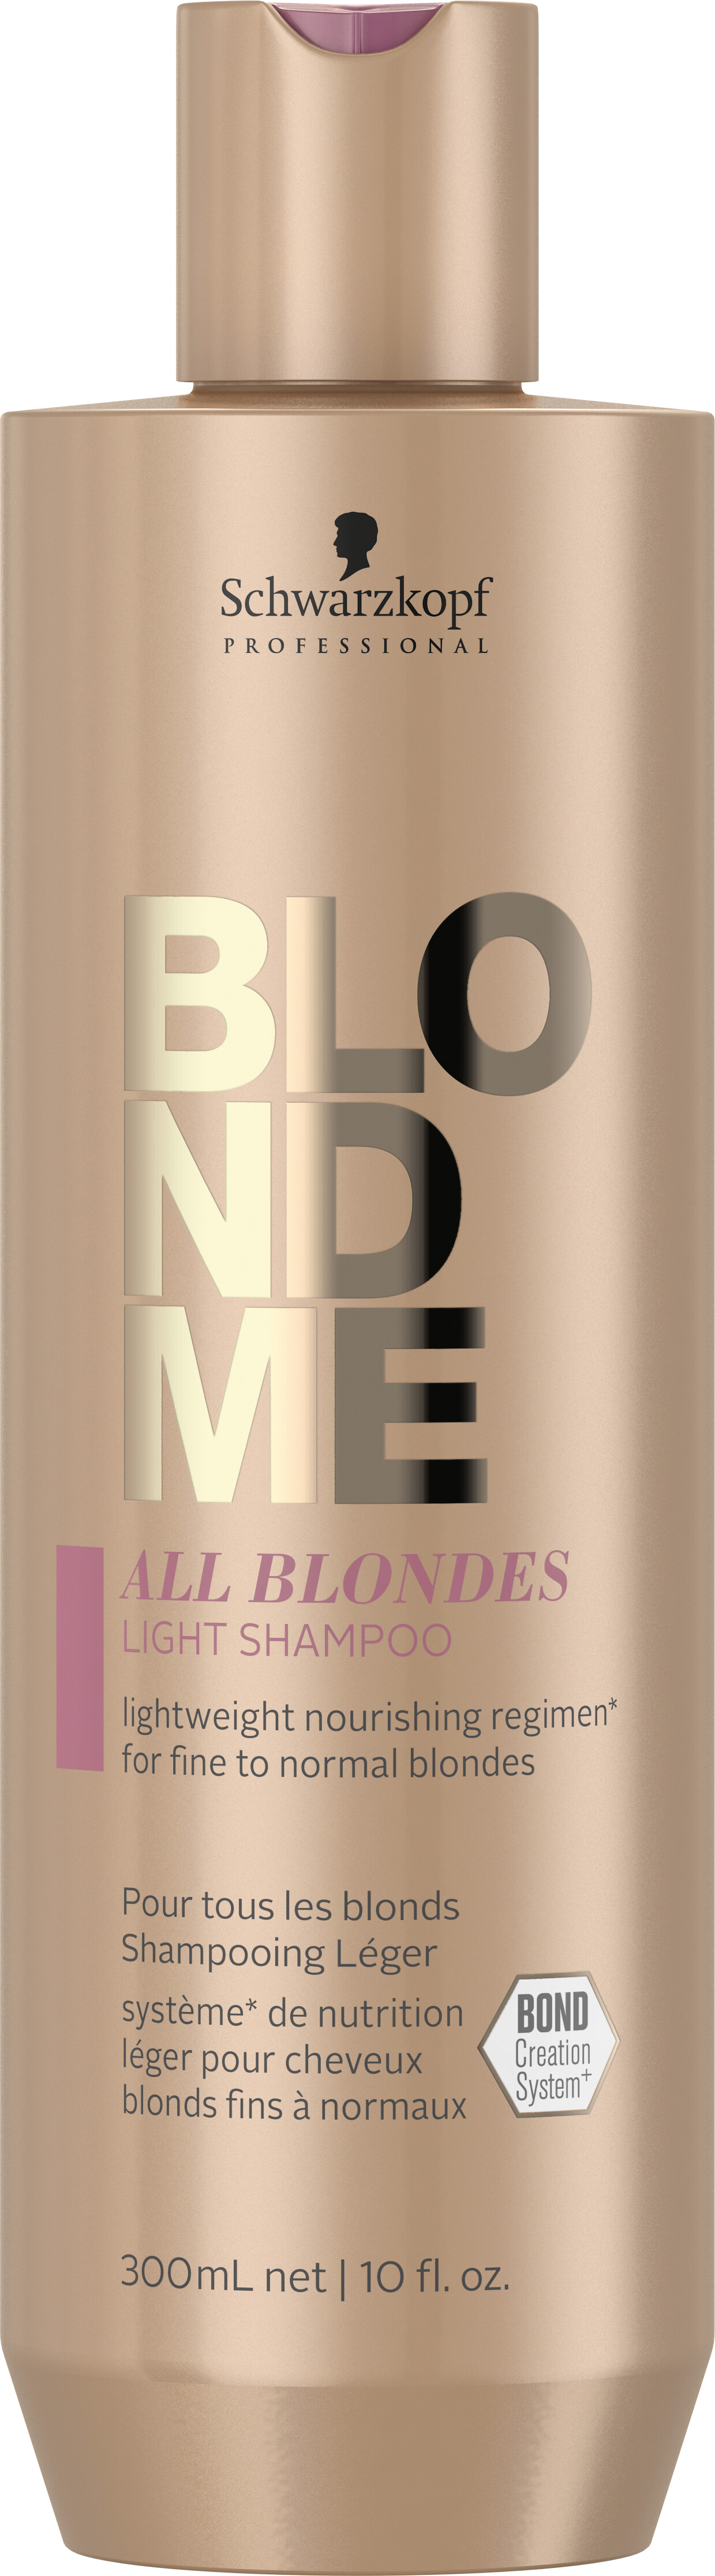 Haircare Products Schwarzkopf Professional BlondMe All Blondes Light Shampoo 300ml